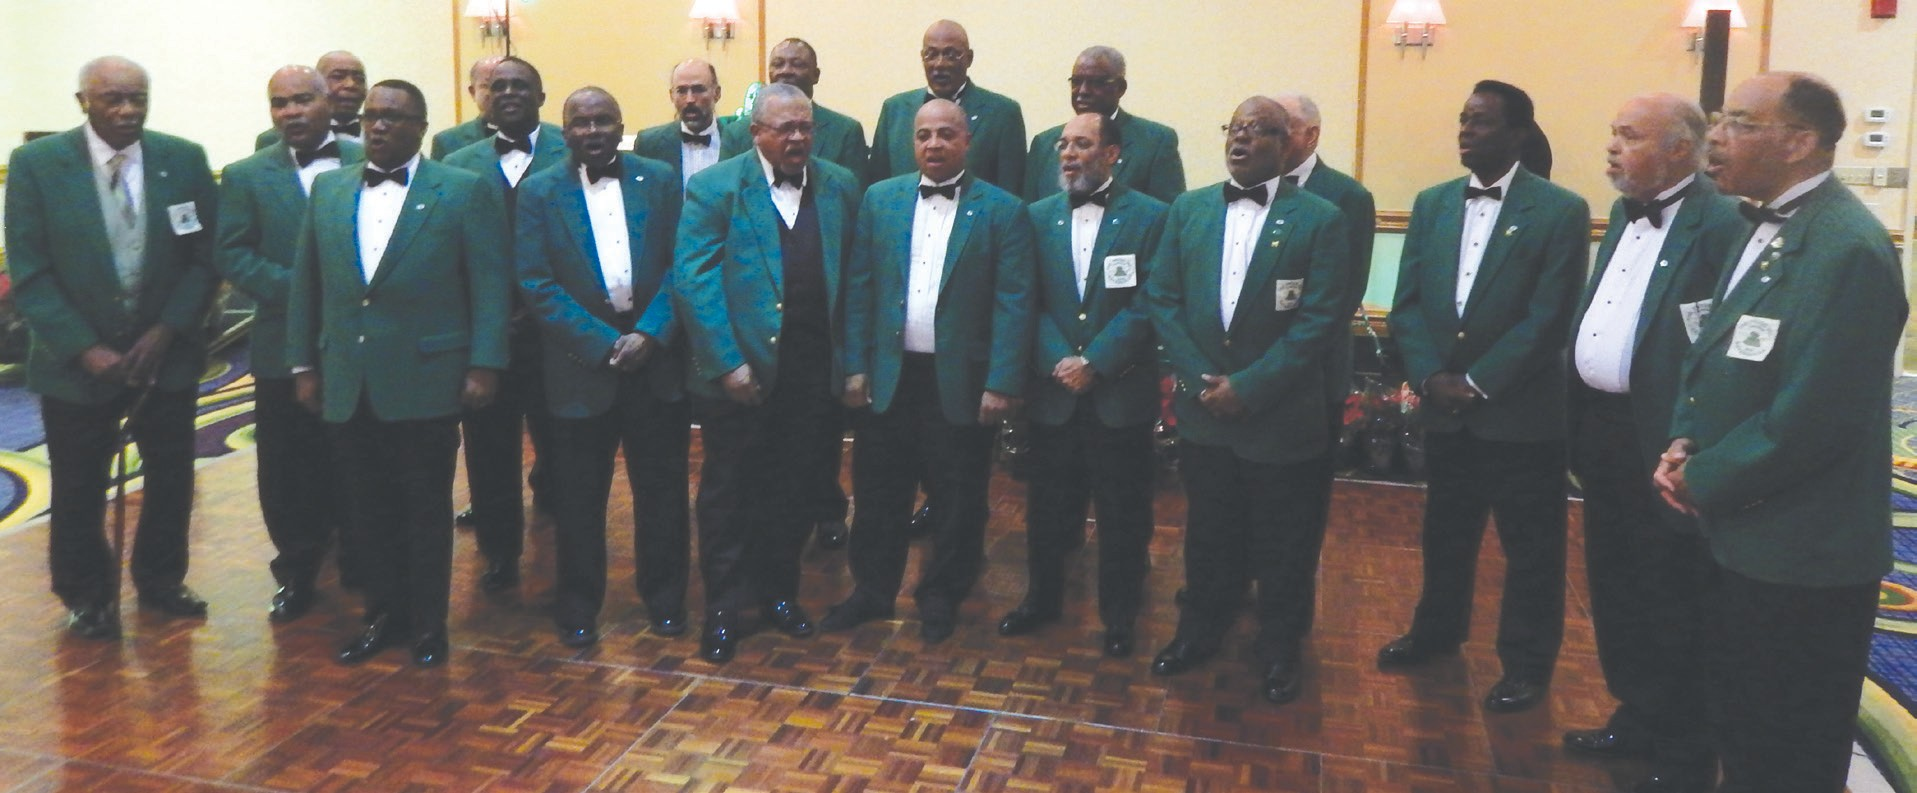 Members of the Frogs, Inc. serenade their guest at the annual Christmas Gala